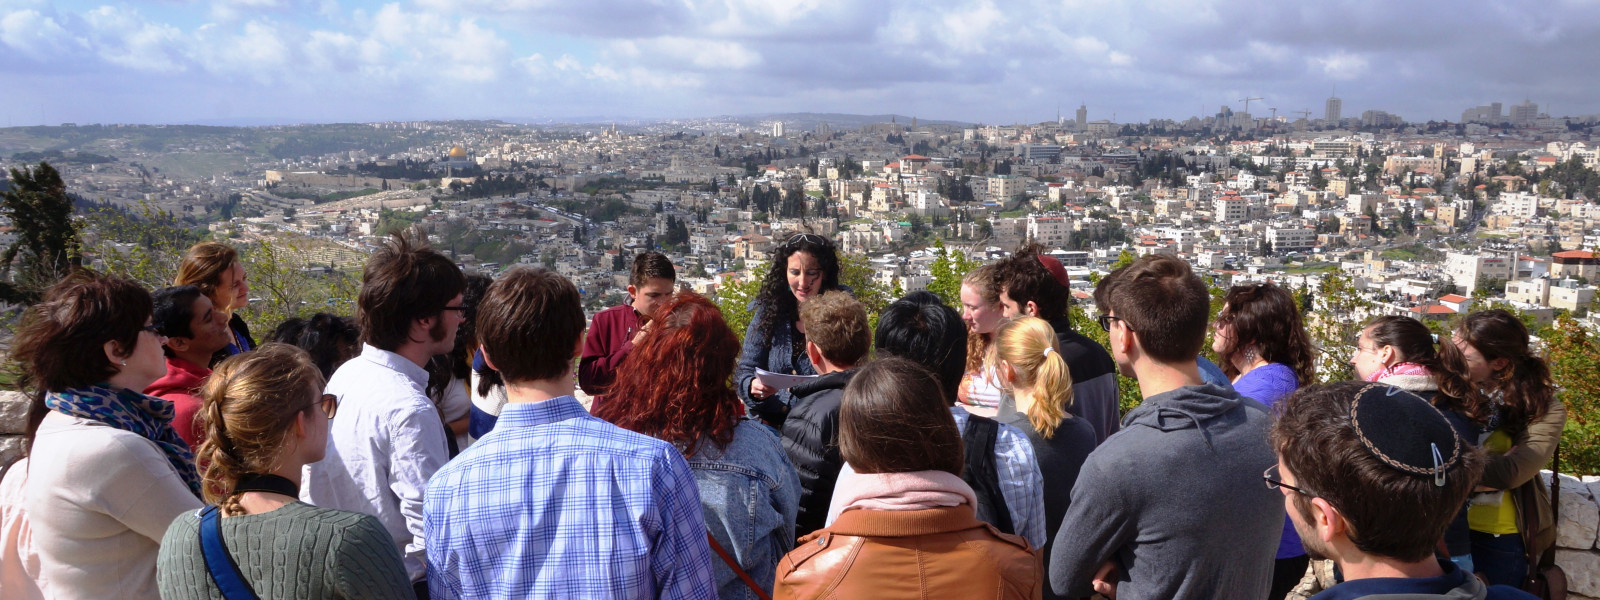 Students listen to a tour guide while looking over the city.